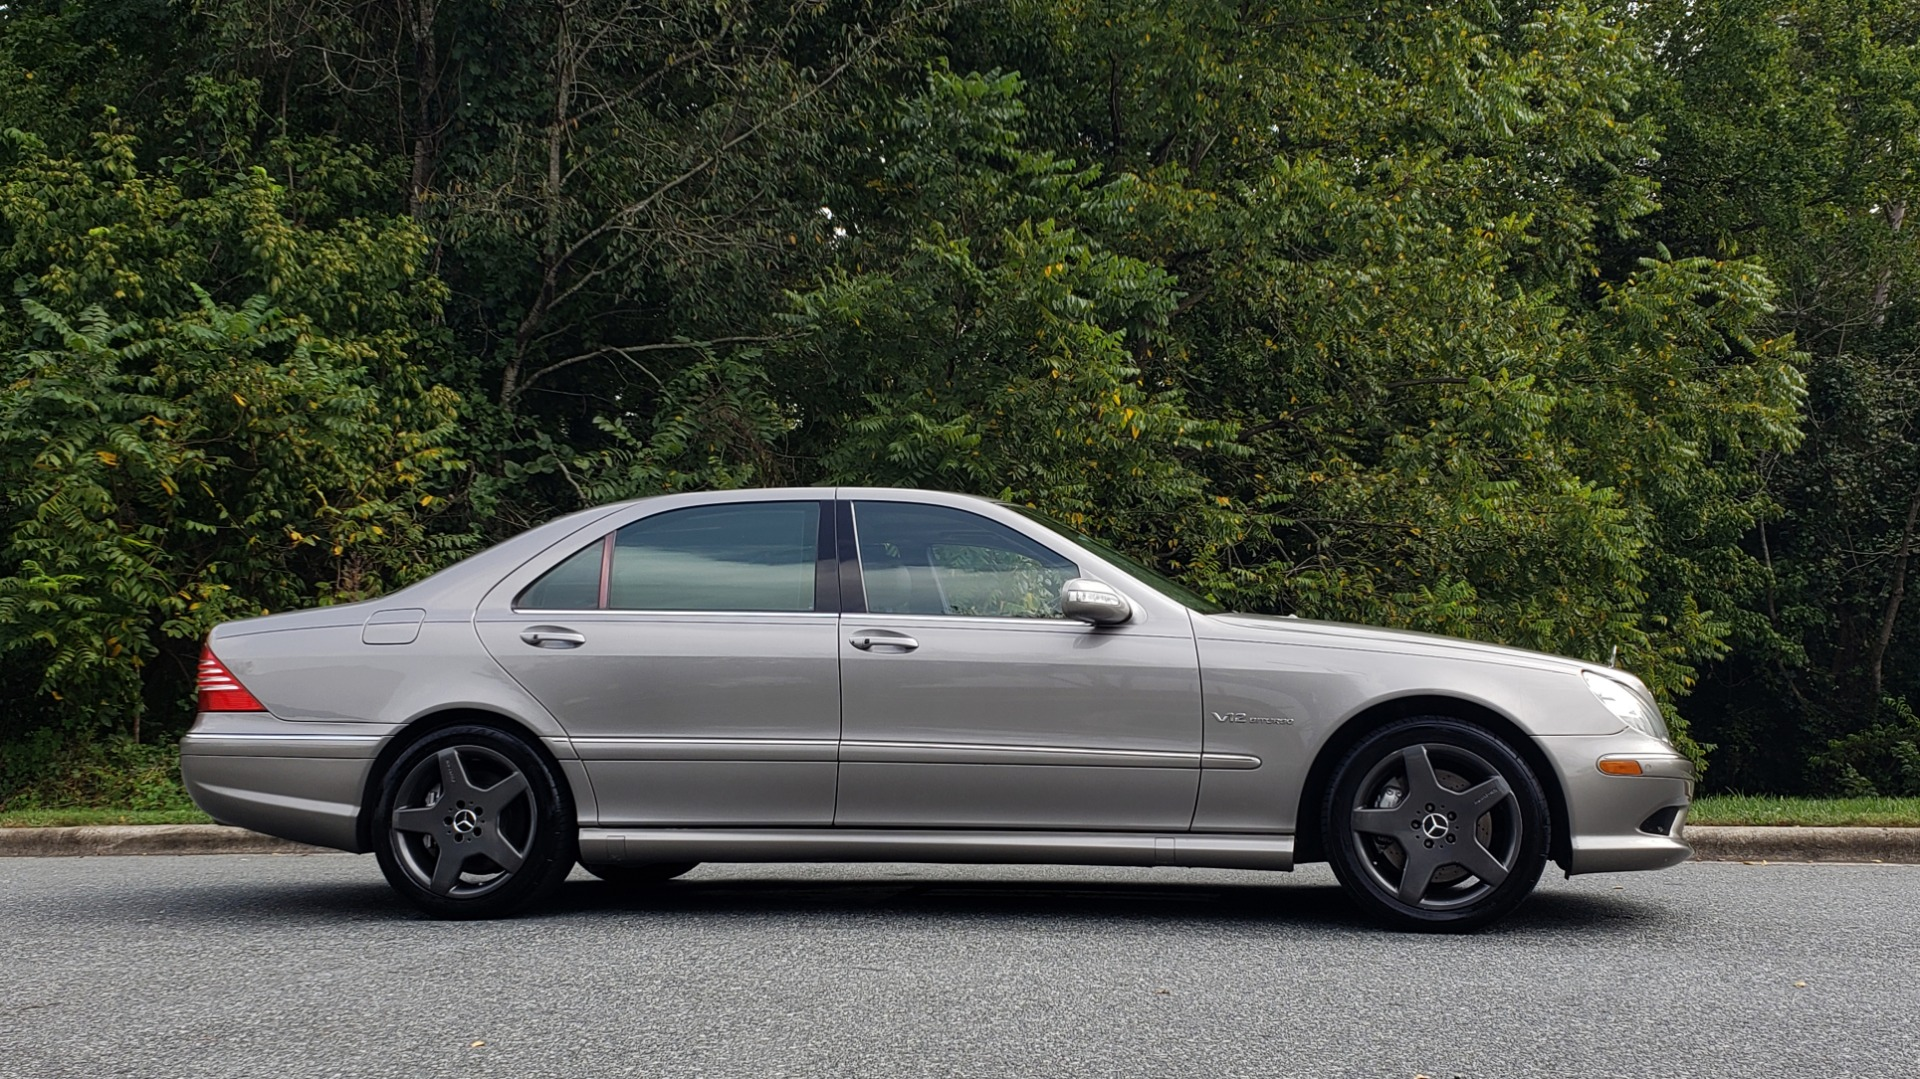 Used 2003 Mercedes-Benz S-CLASS S600 5.5L V12 SEDAN / SUNROOF / KEYLESS-GO / BOSE for sale Sold at Formula Imports in Charlotte NC 28227 5